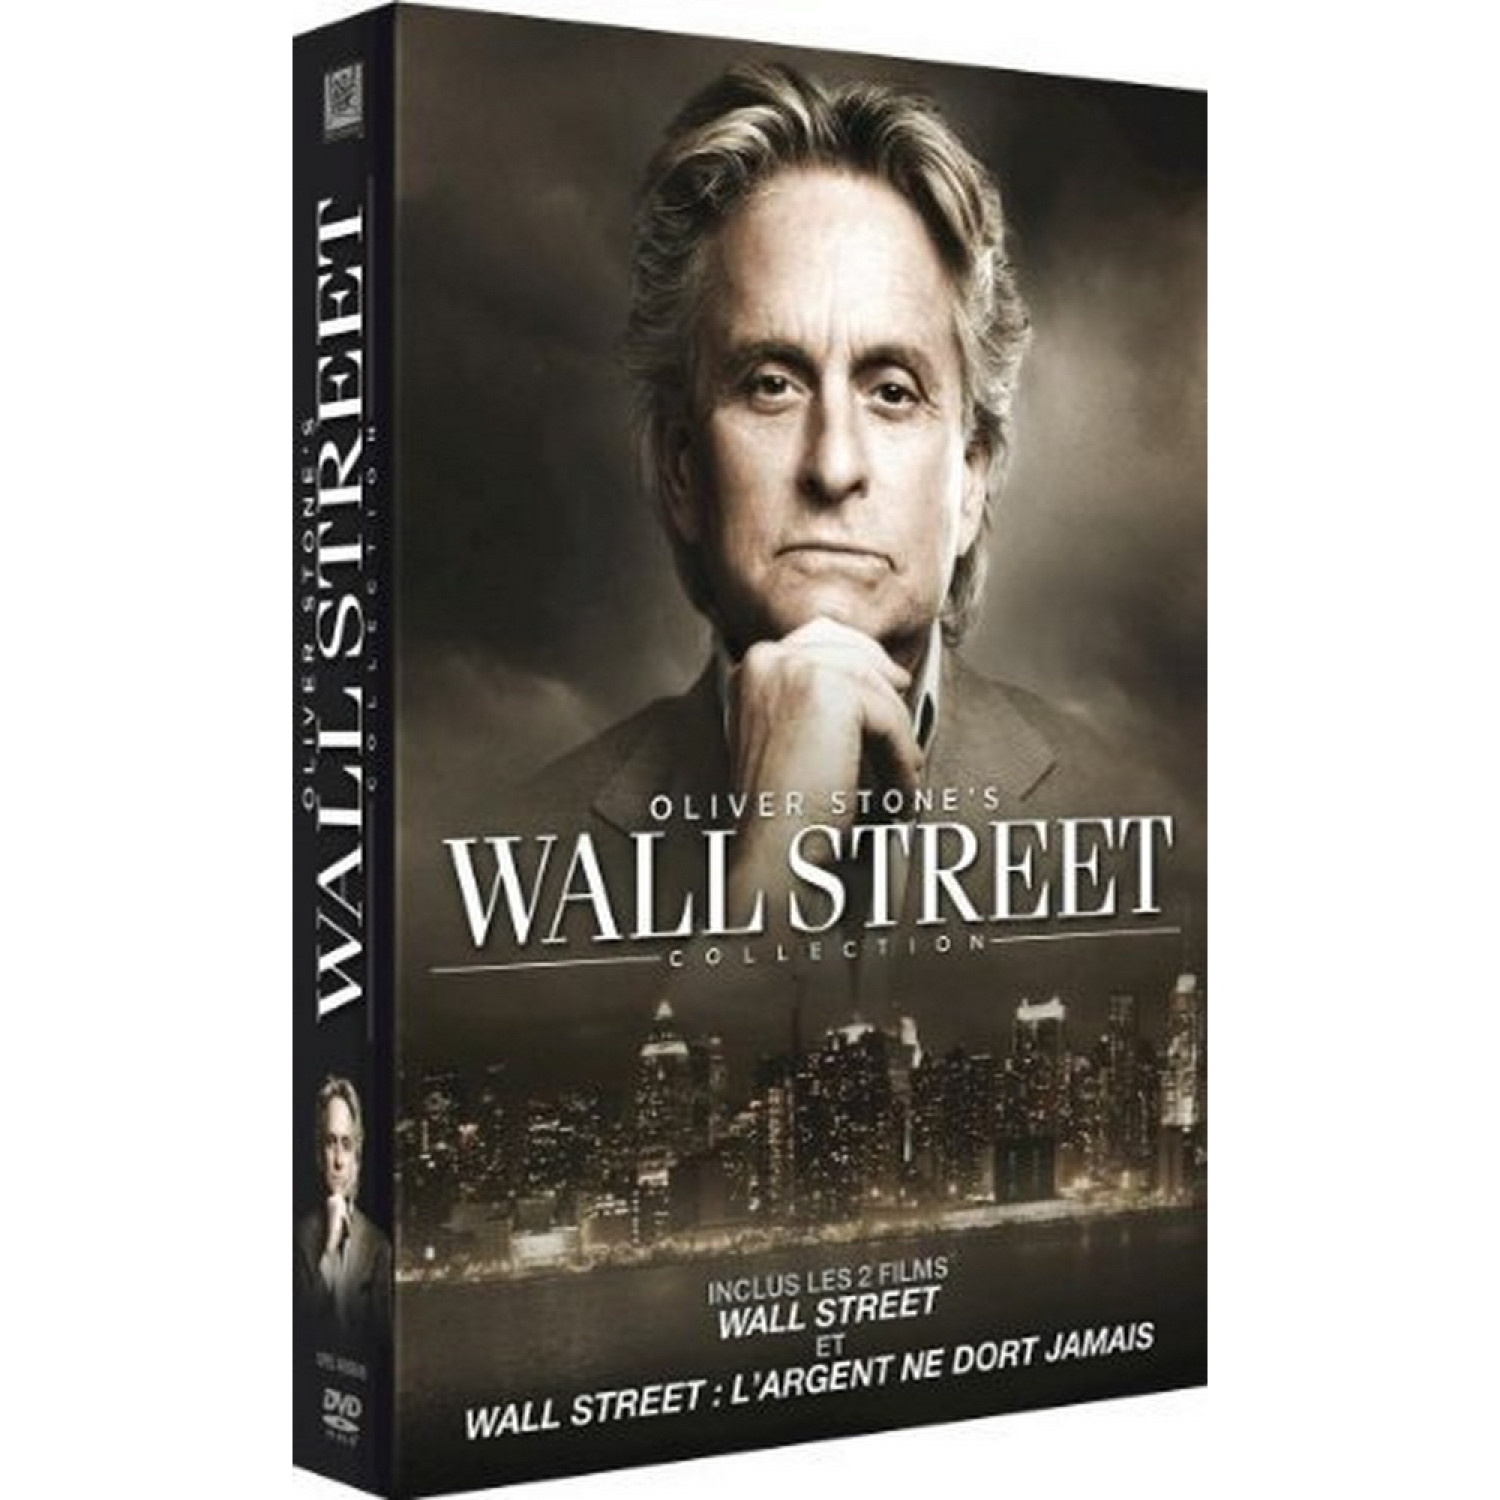 Oliver Stone's Wall Street Collection   Wall Street 1 + Wall Street 2